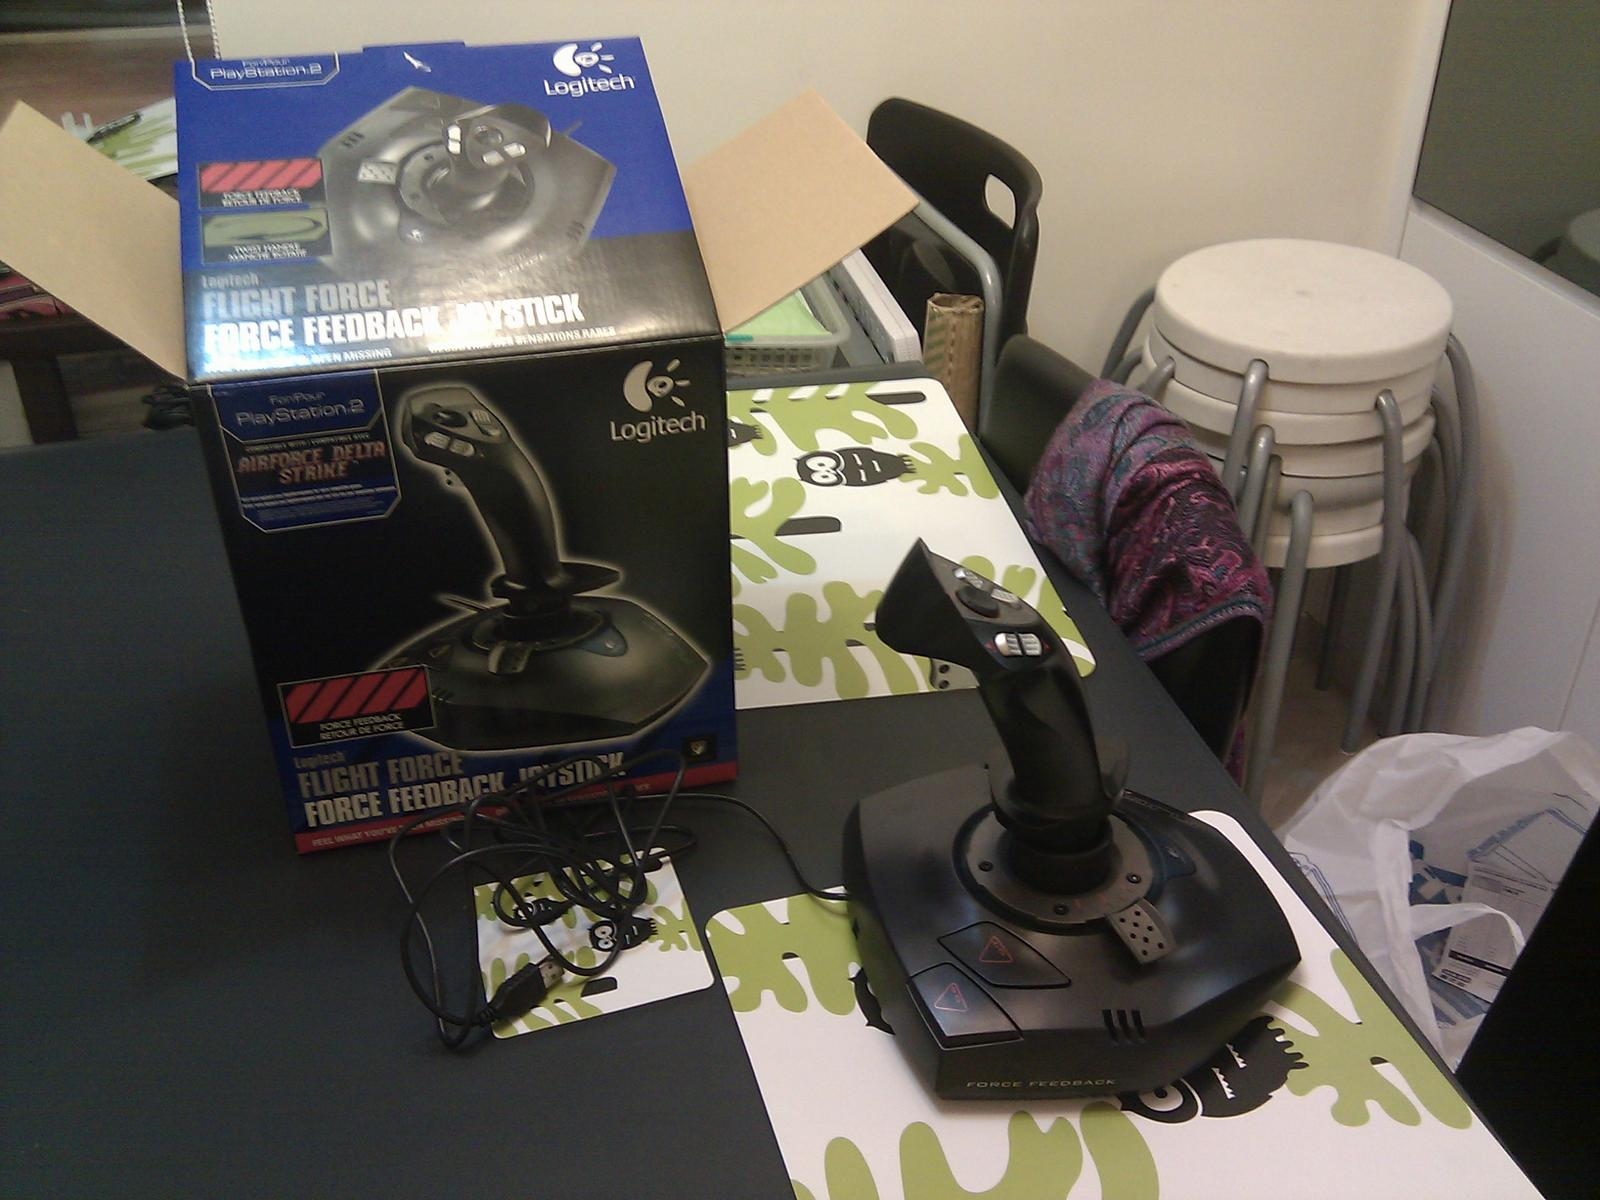 201021b95ff Here are some photo of the Logitech Flight Force Joystick for PS2, in  pieces of course: